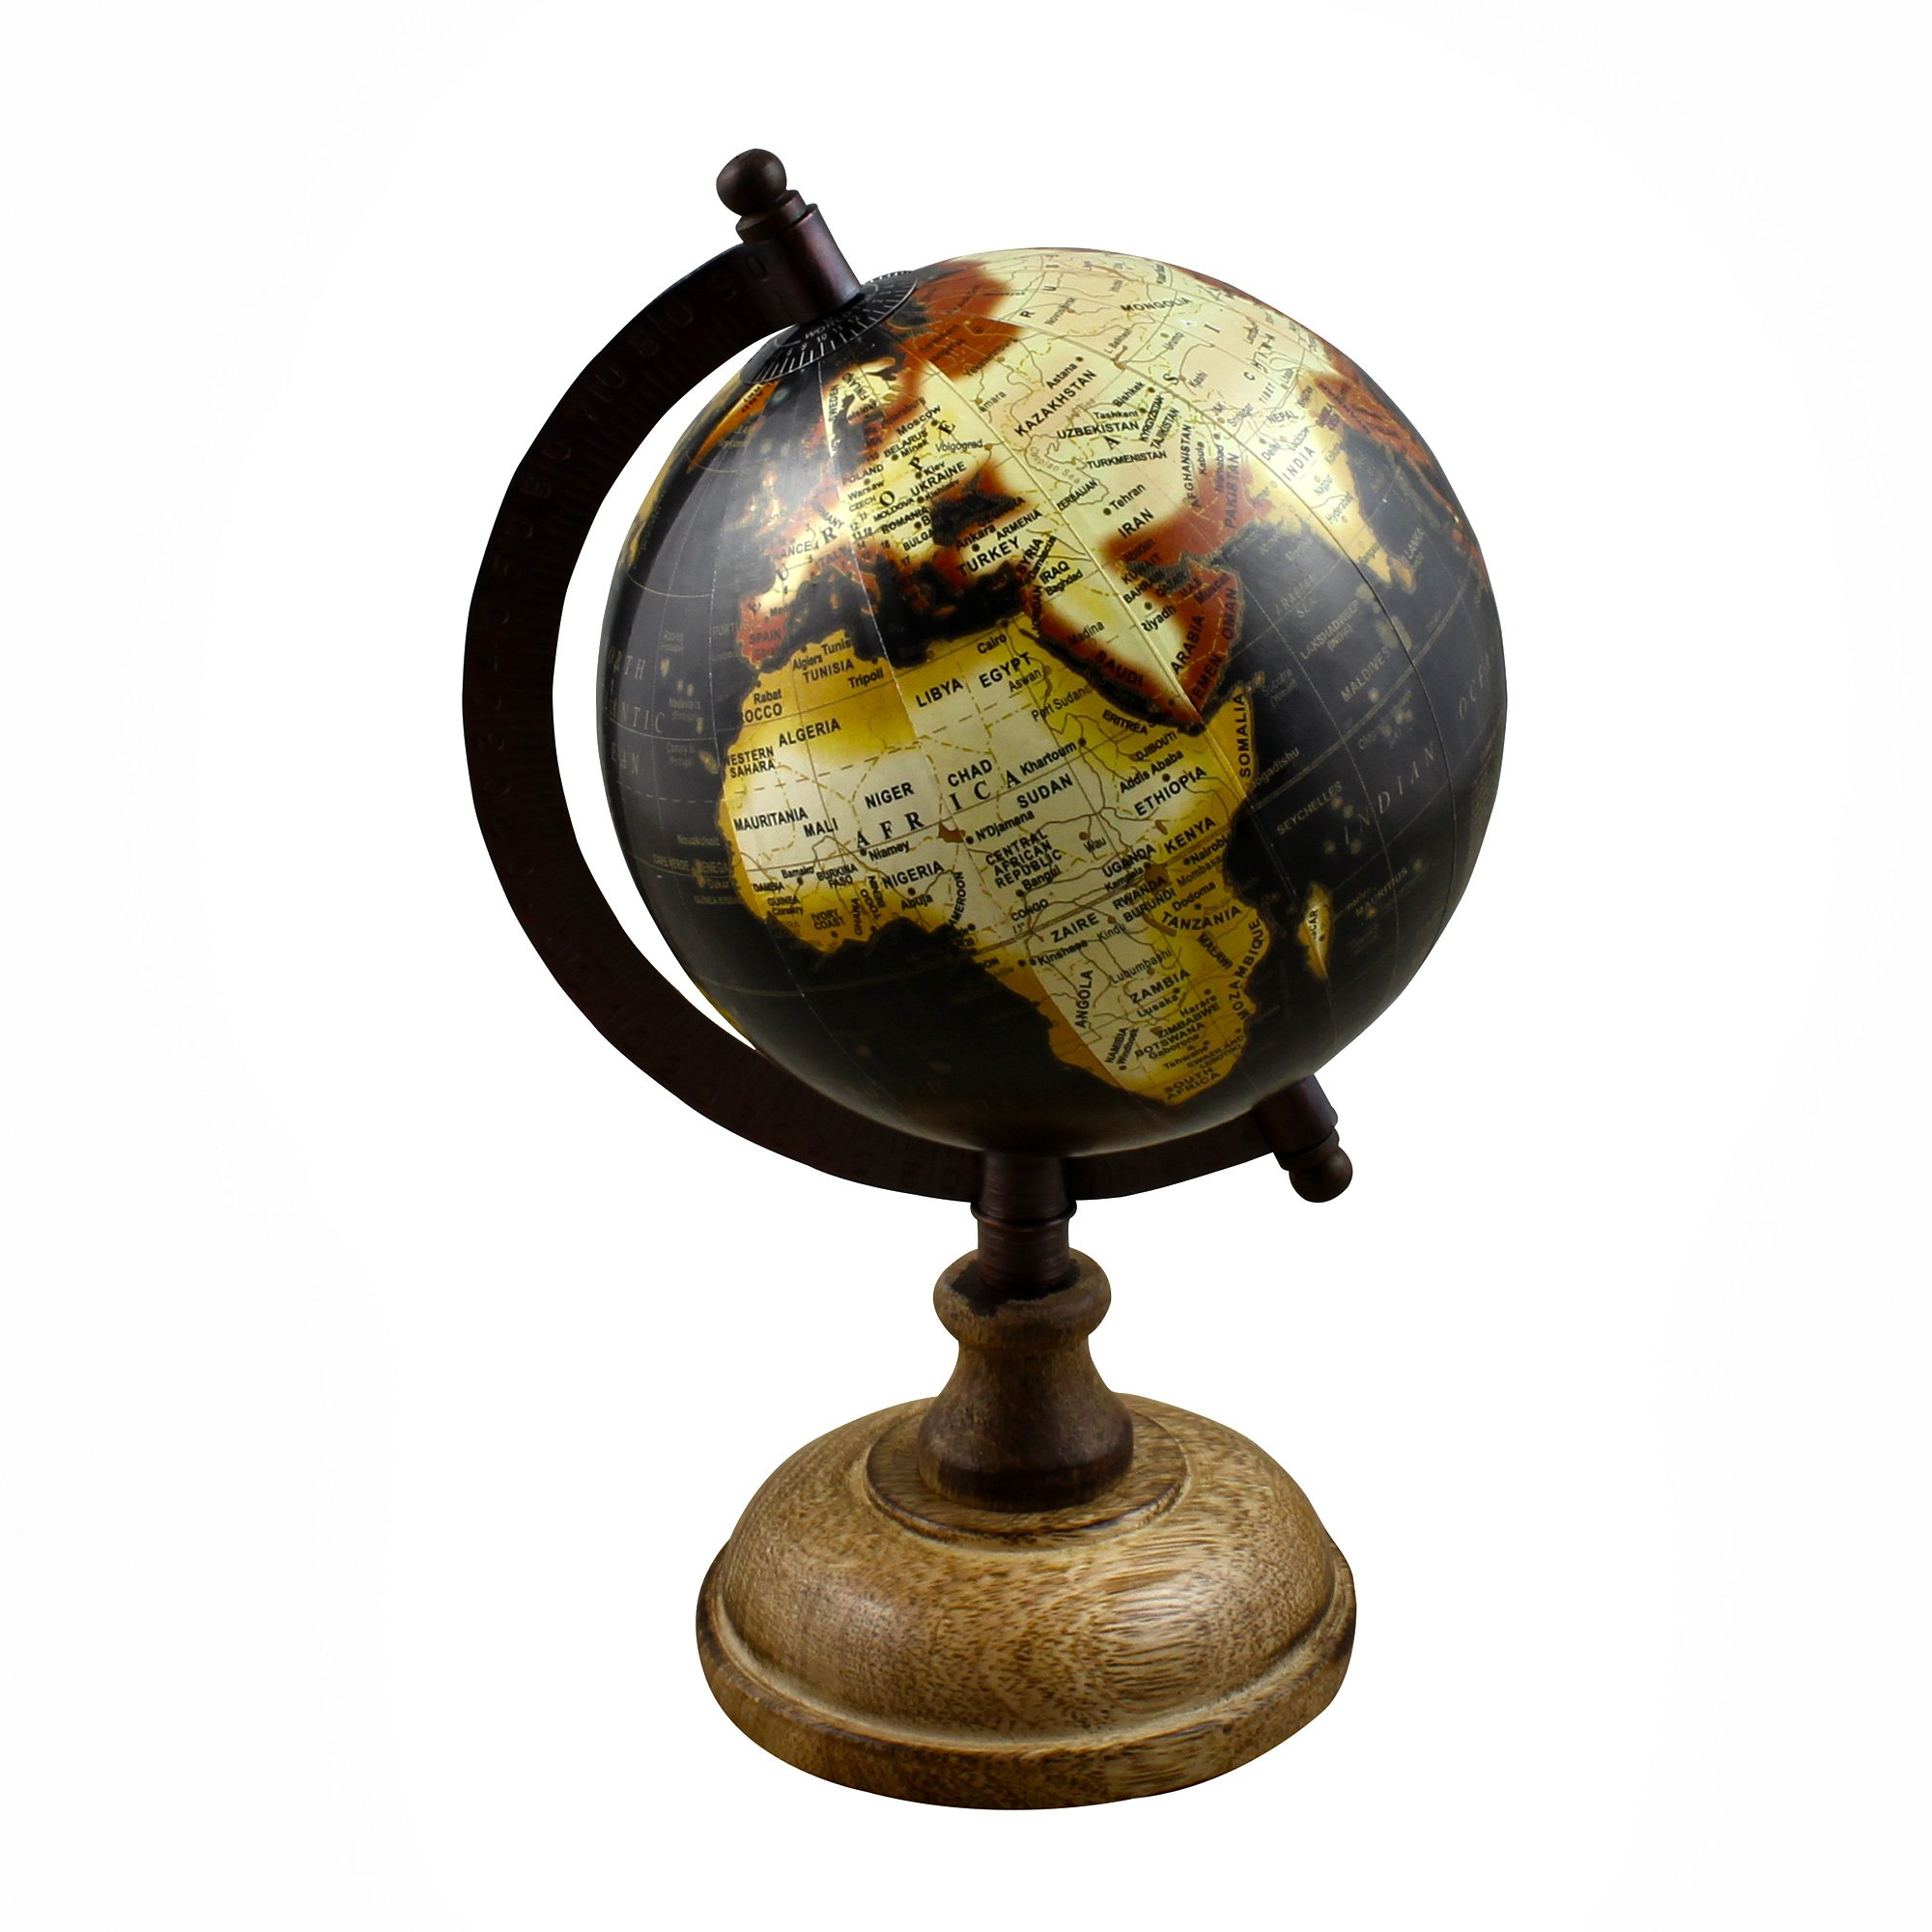 Stock Clearance Sale!! World Globe Earth Map with Stand 9.5 Inches - Perfect for Home Office Desk Decoration